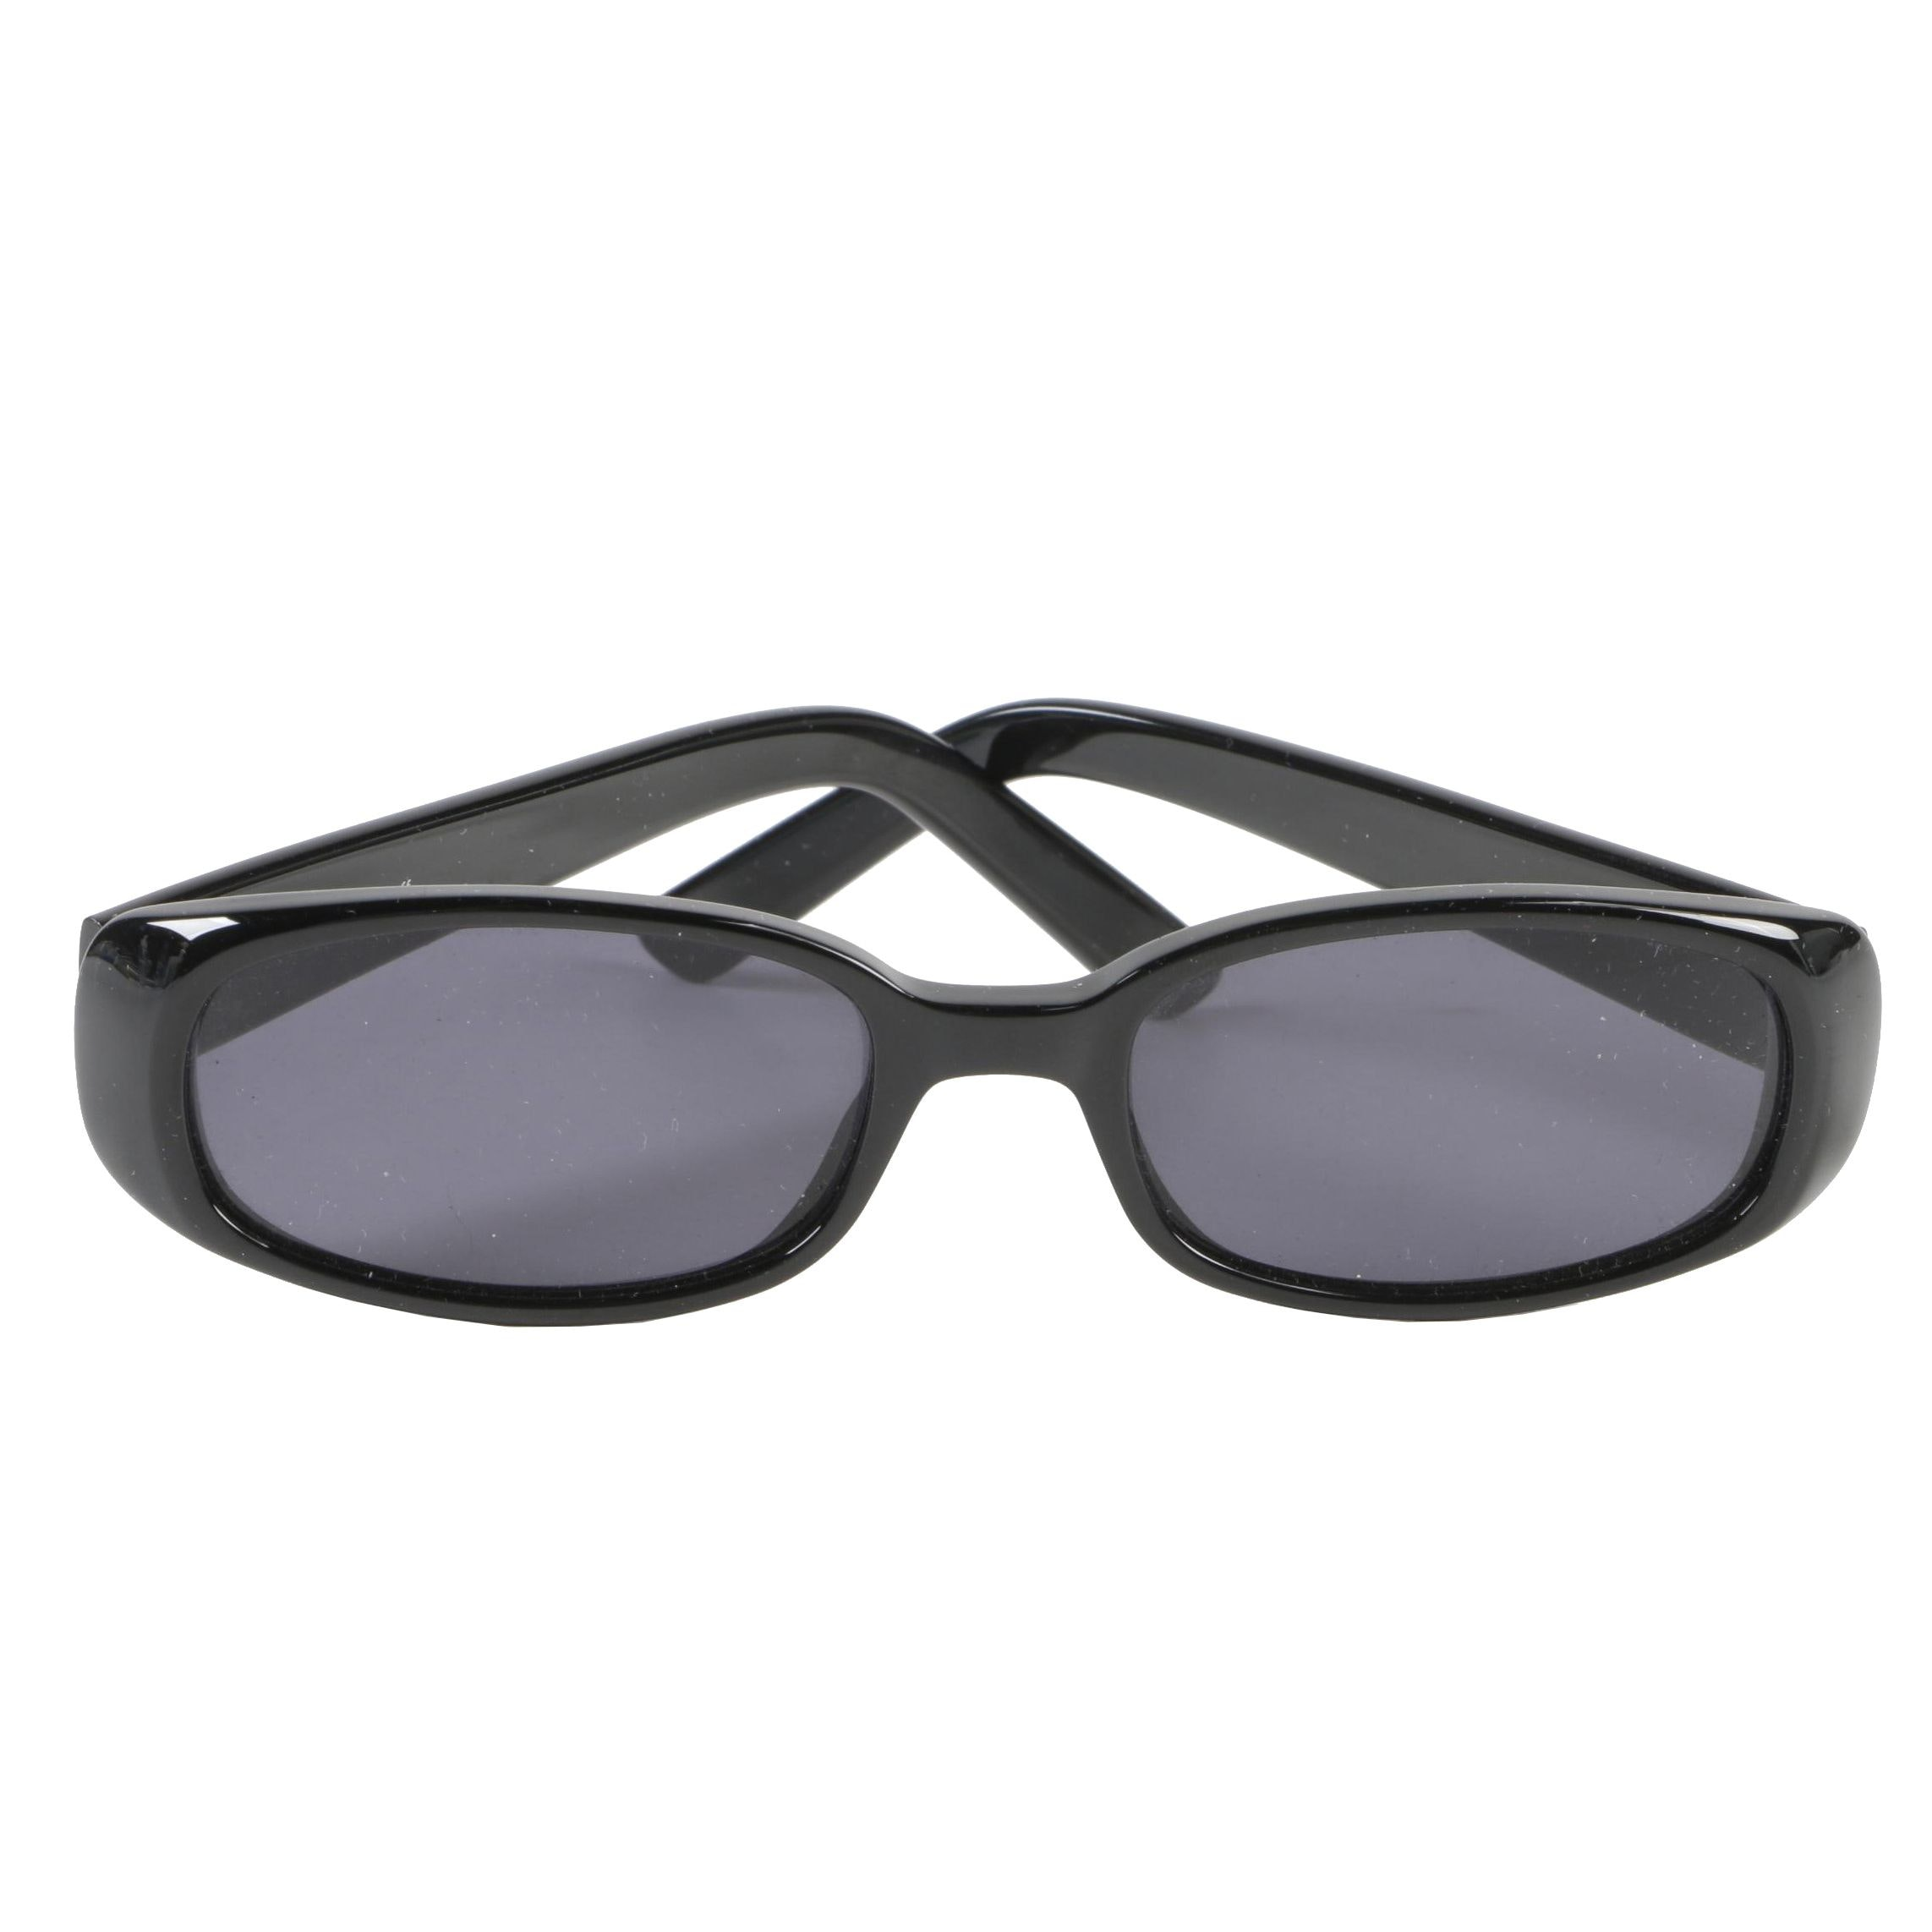 Gucci GG 2452/S Black Sunglasses with Case, Made in Italy